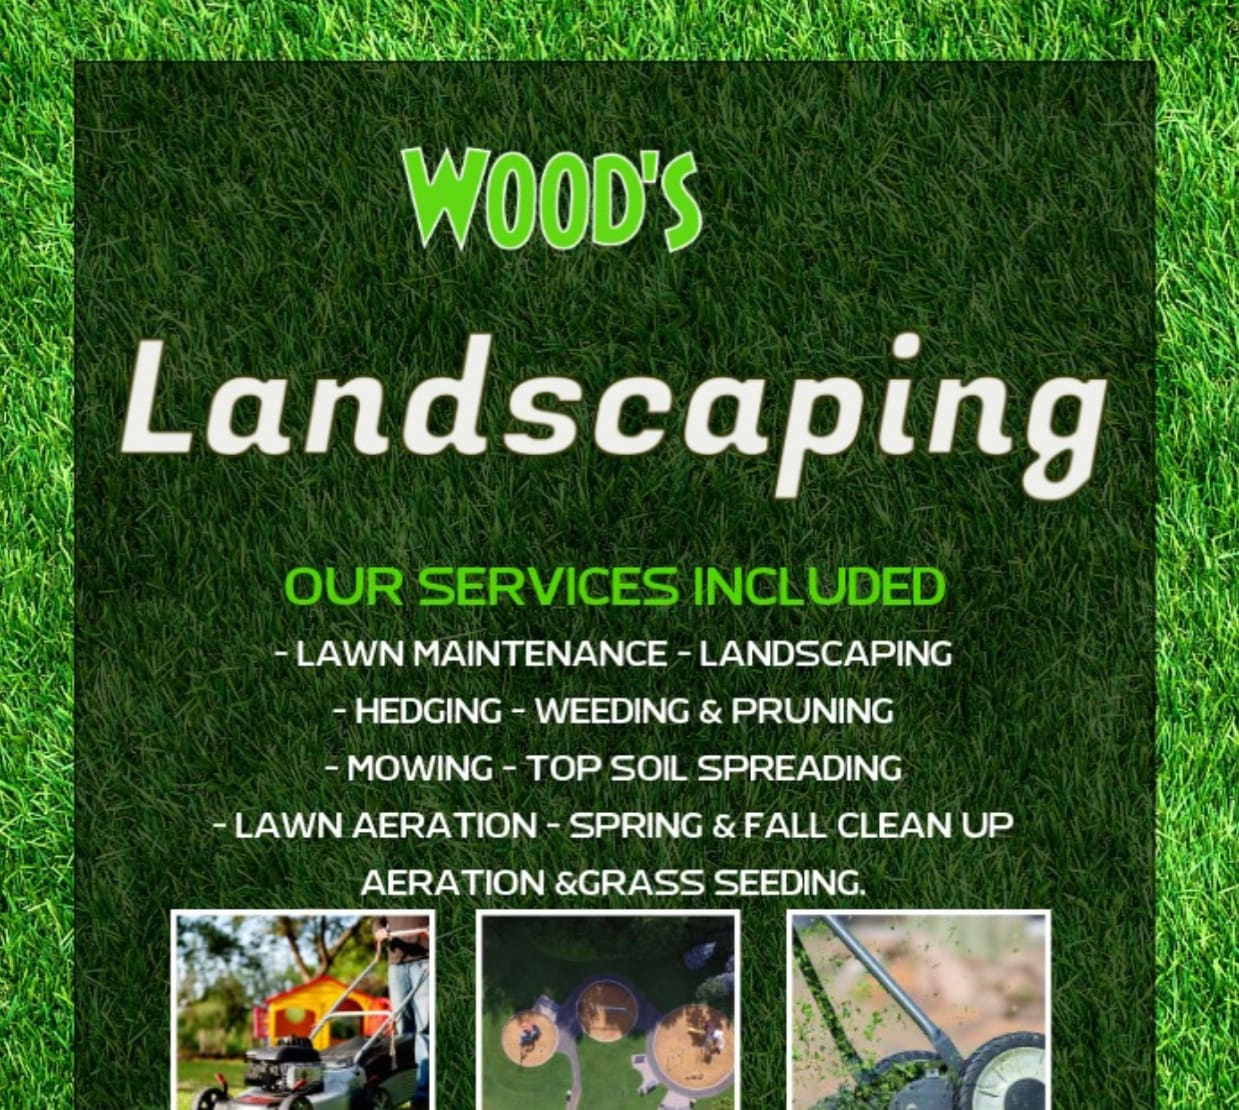 Woods Landscaping